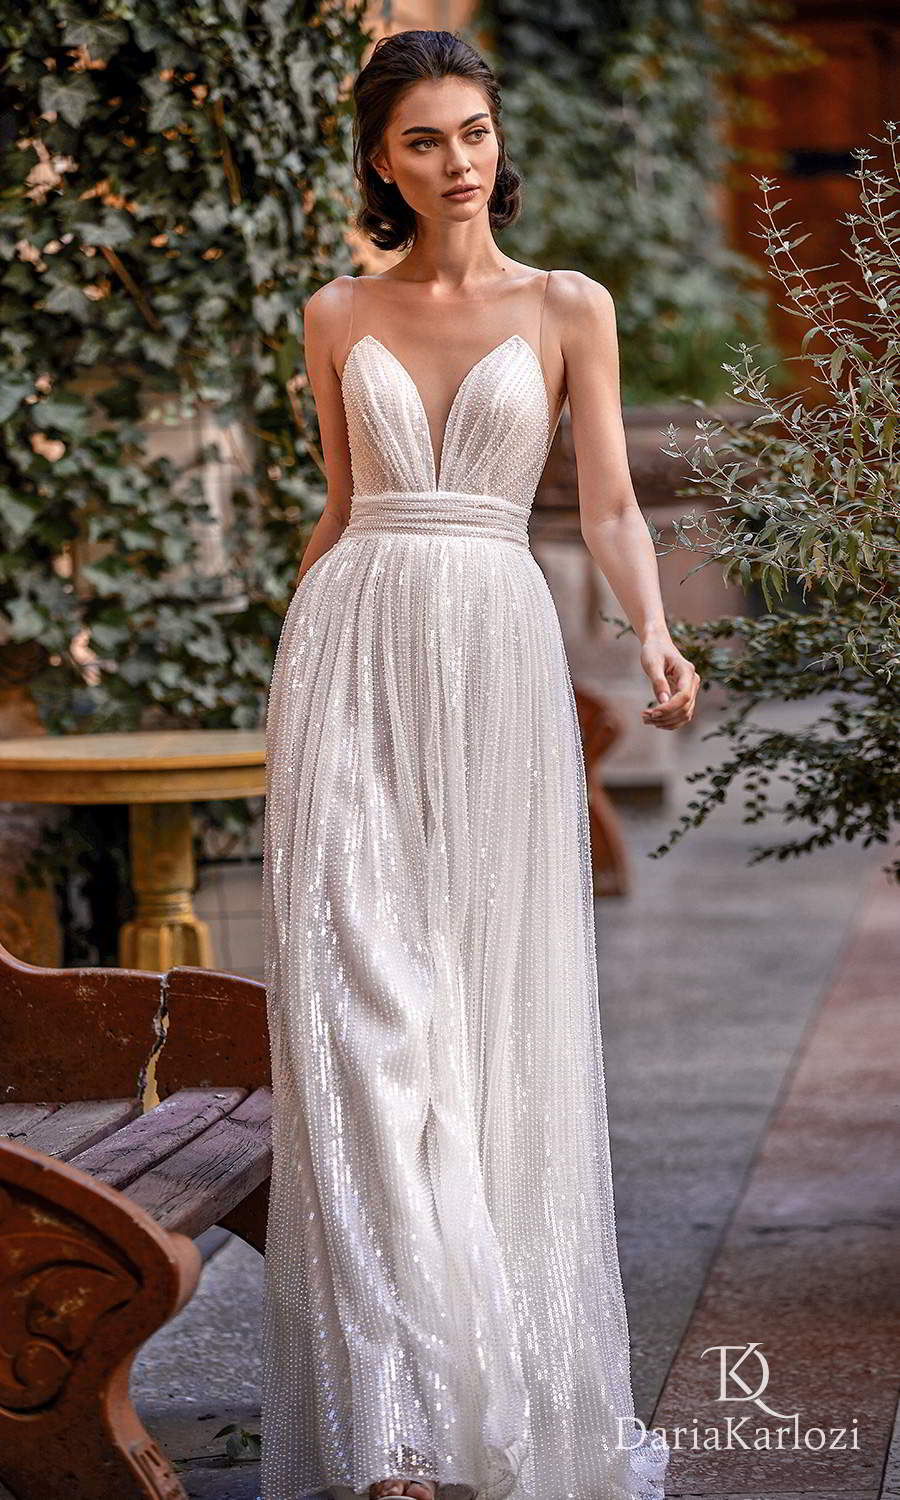 daria karlozi 2021 graceful dream bridal sleeveless illusion straps plunging sweetheart neckline fully embellished a line wedding dress (towards the love) mv